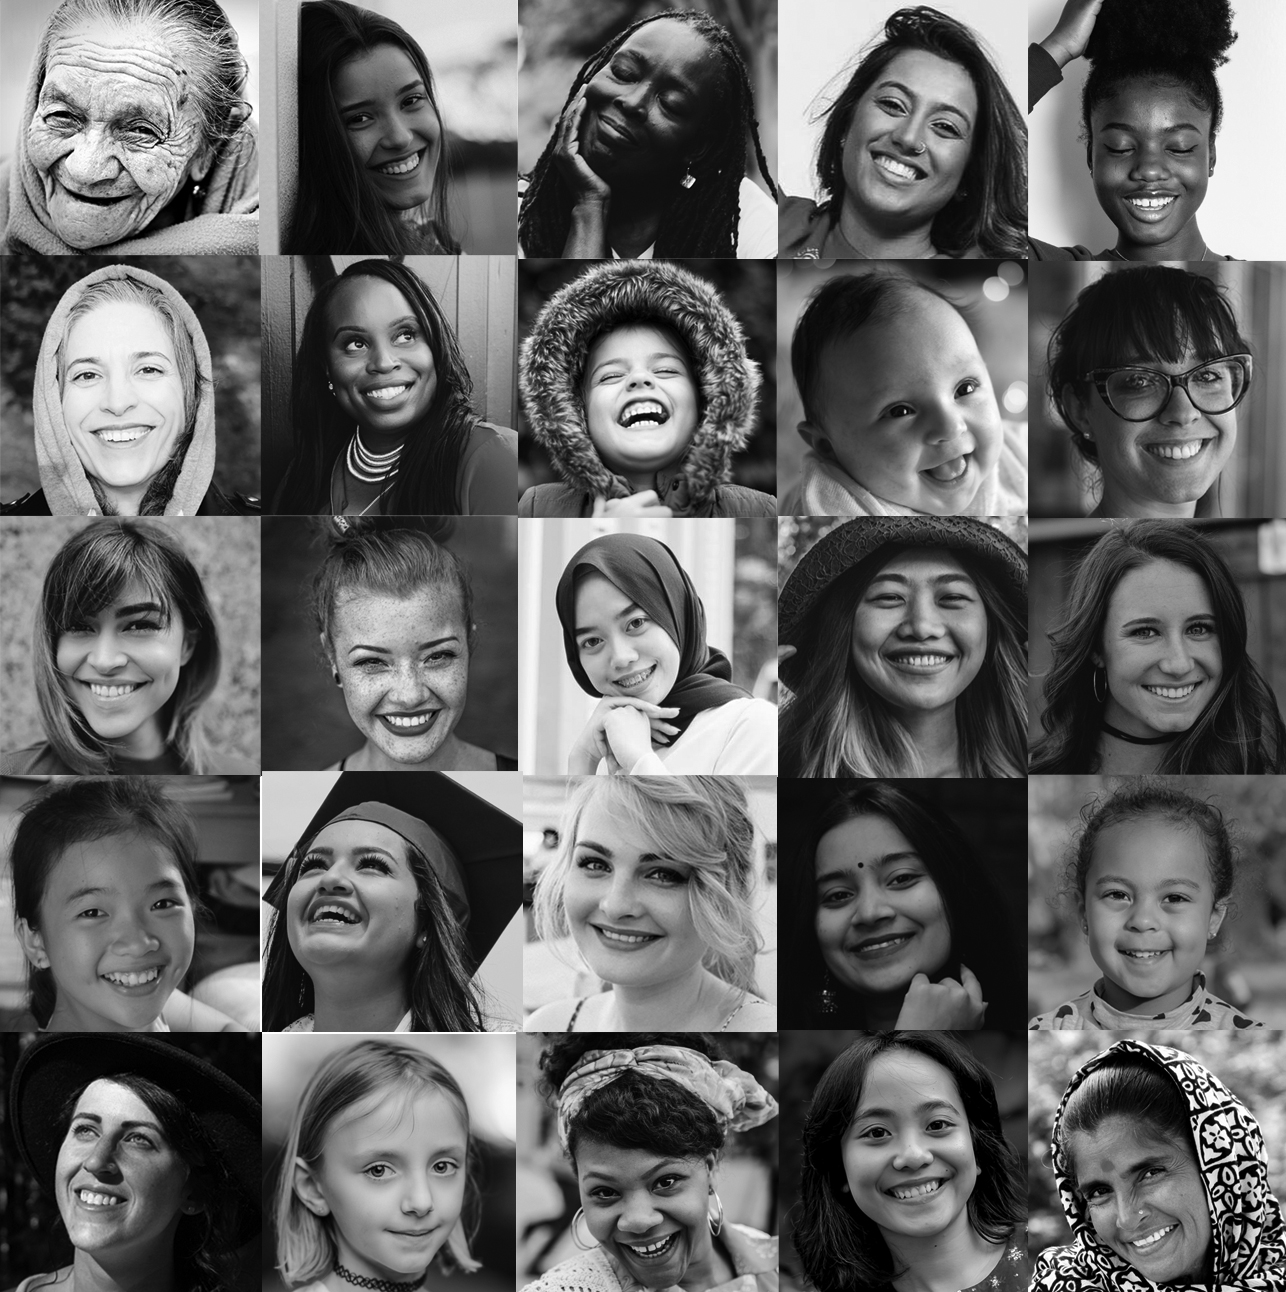 Our Mission - To give transformative grants to local charities that benefit women and girls in London.To build, expand and cultivate a community of philanthropists.